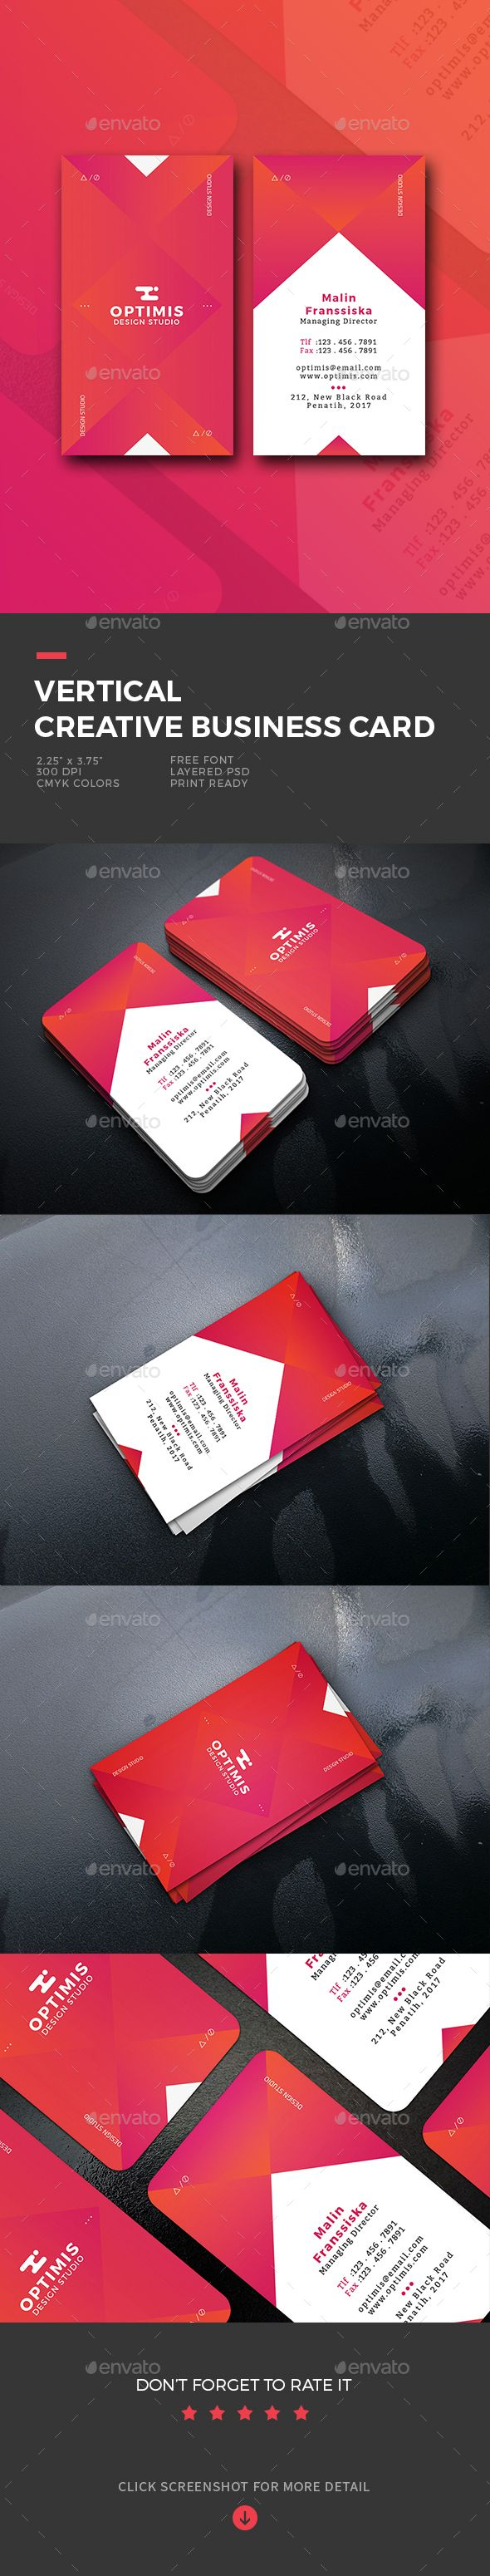 596 best id card images on pinterest lipsense business cards vertical creative business card template psd reheart Choice Image